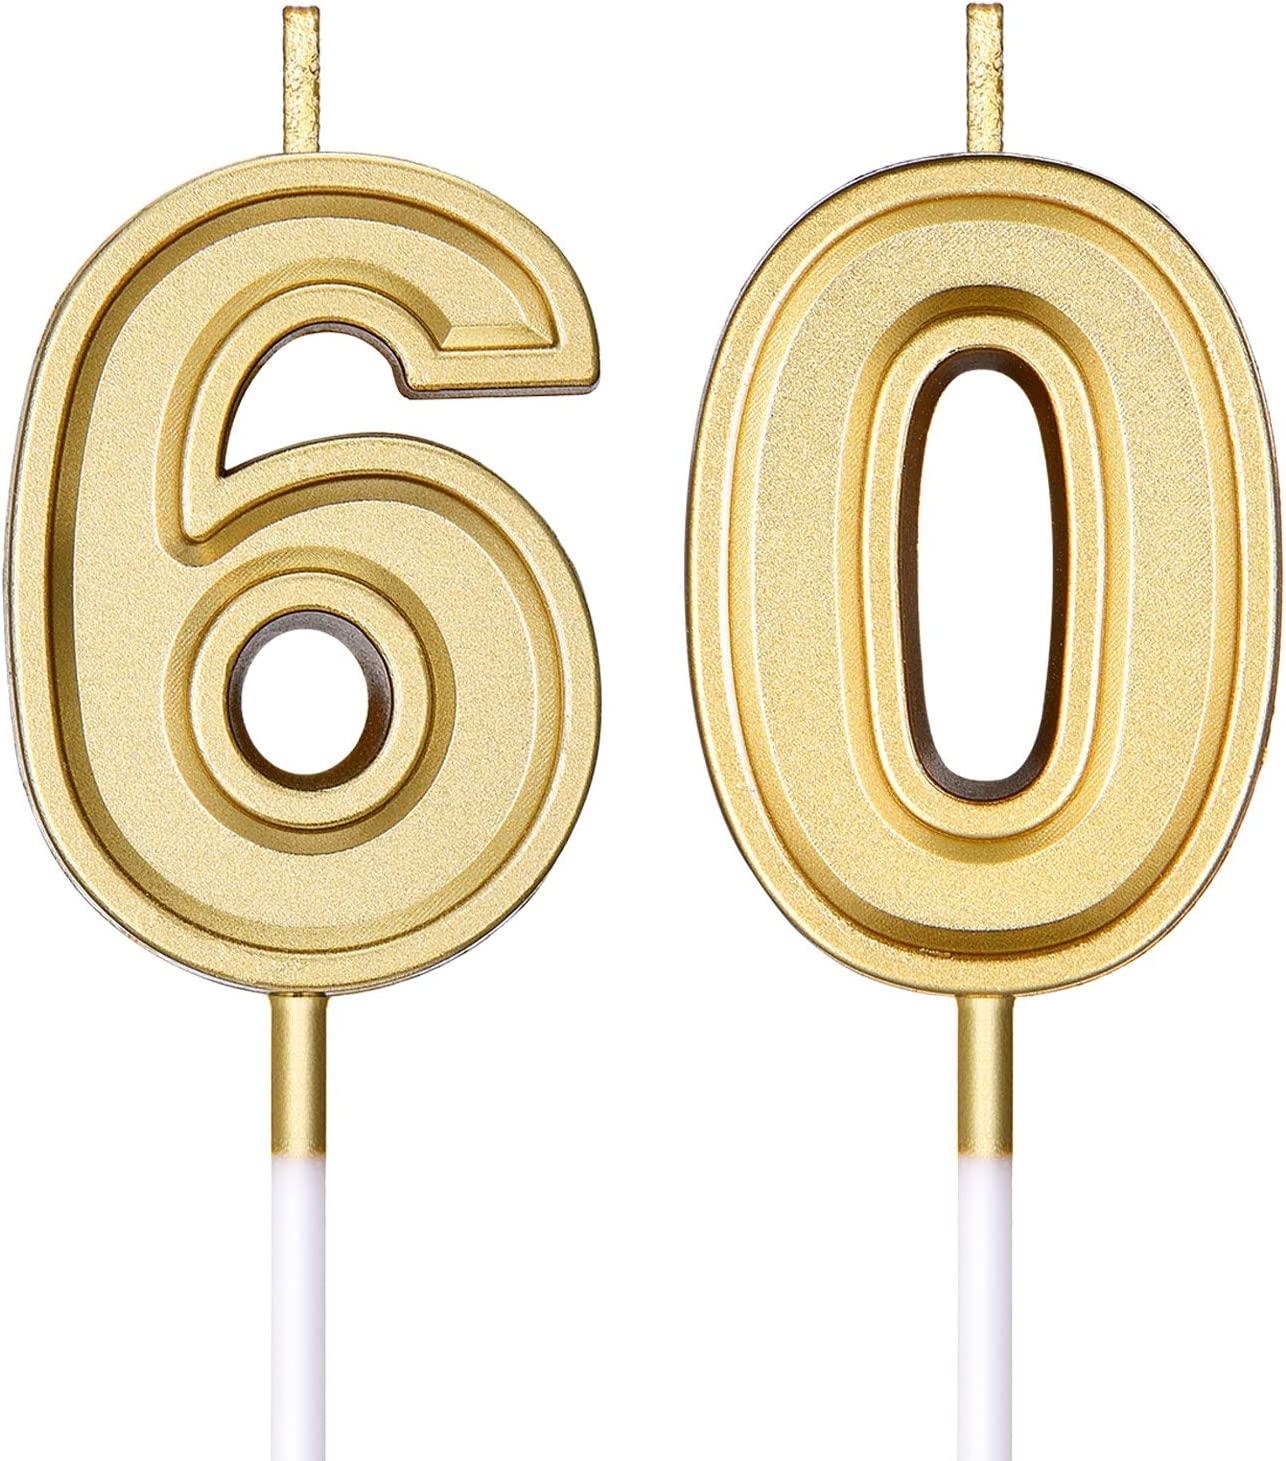 60th Birthday Candles Courier shipping free shipping Cake Happy Numeral Max 62% OFF C